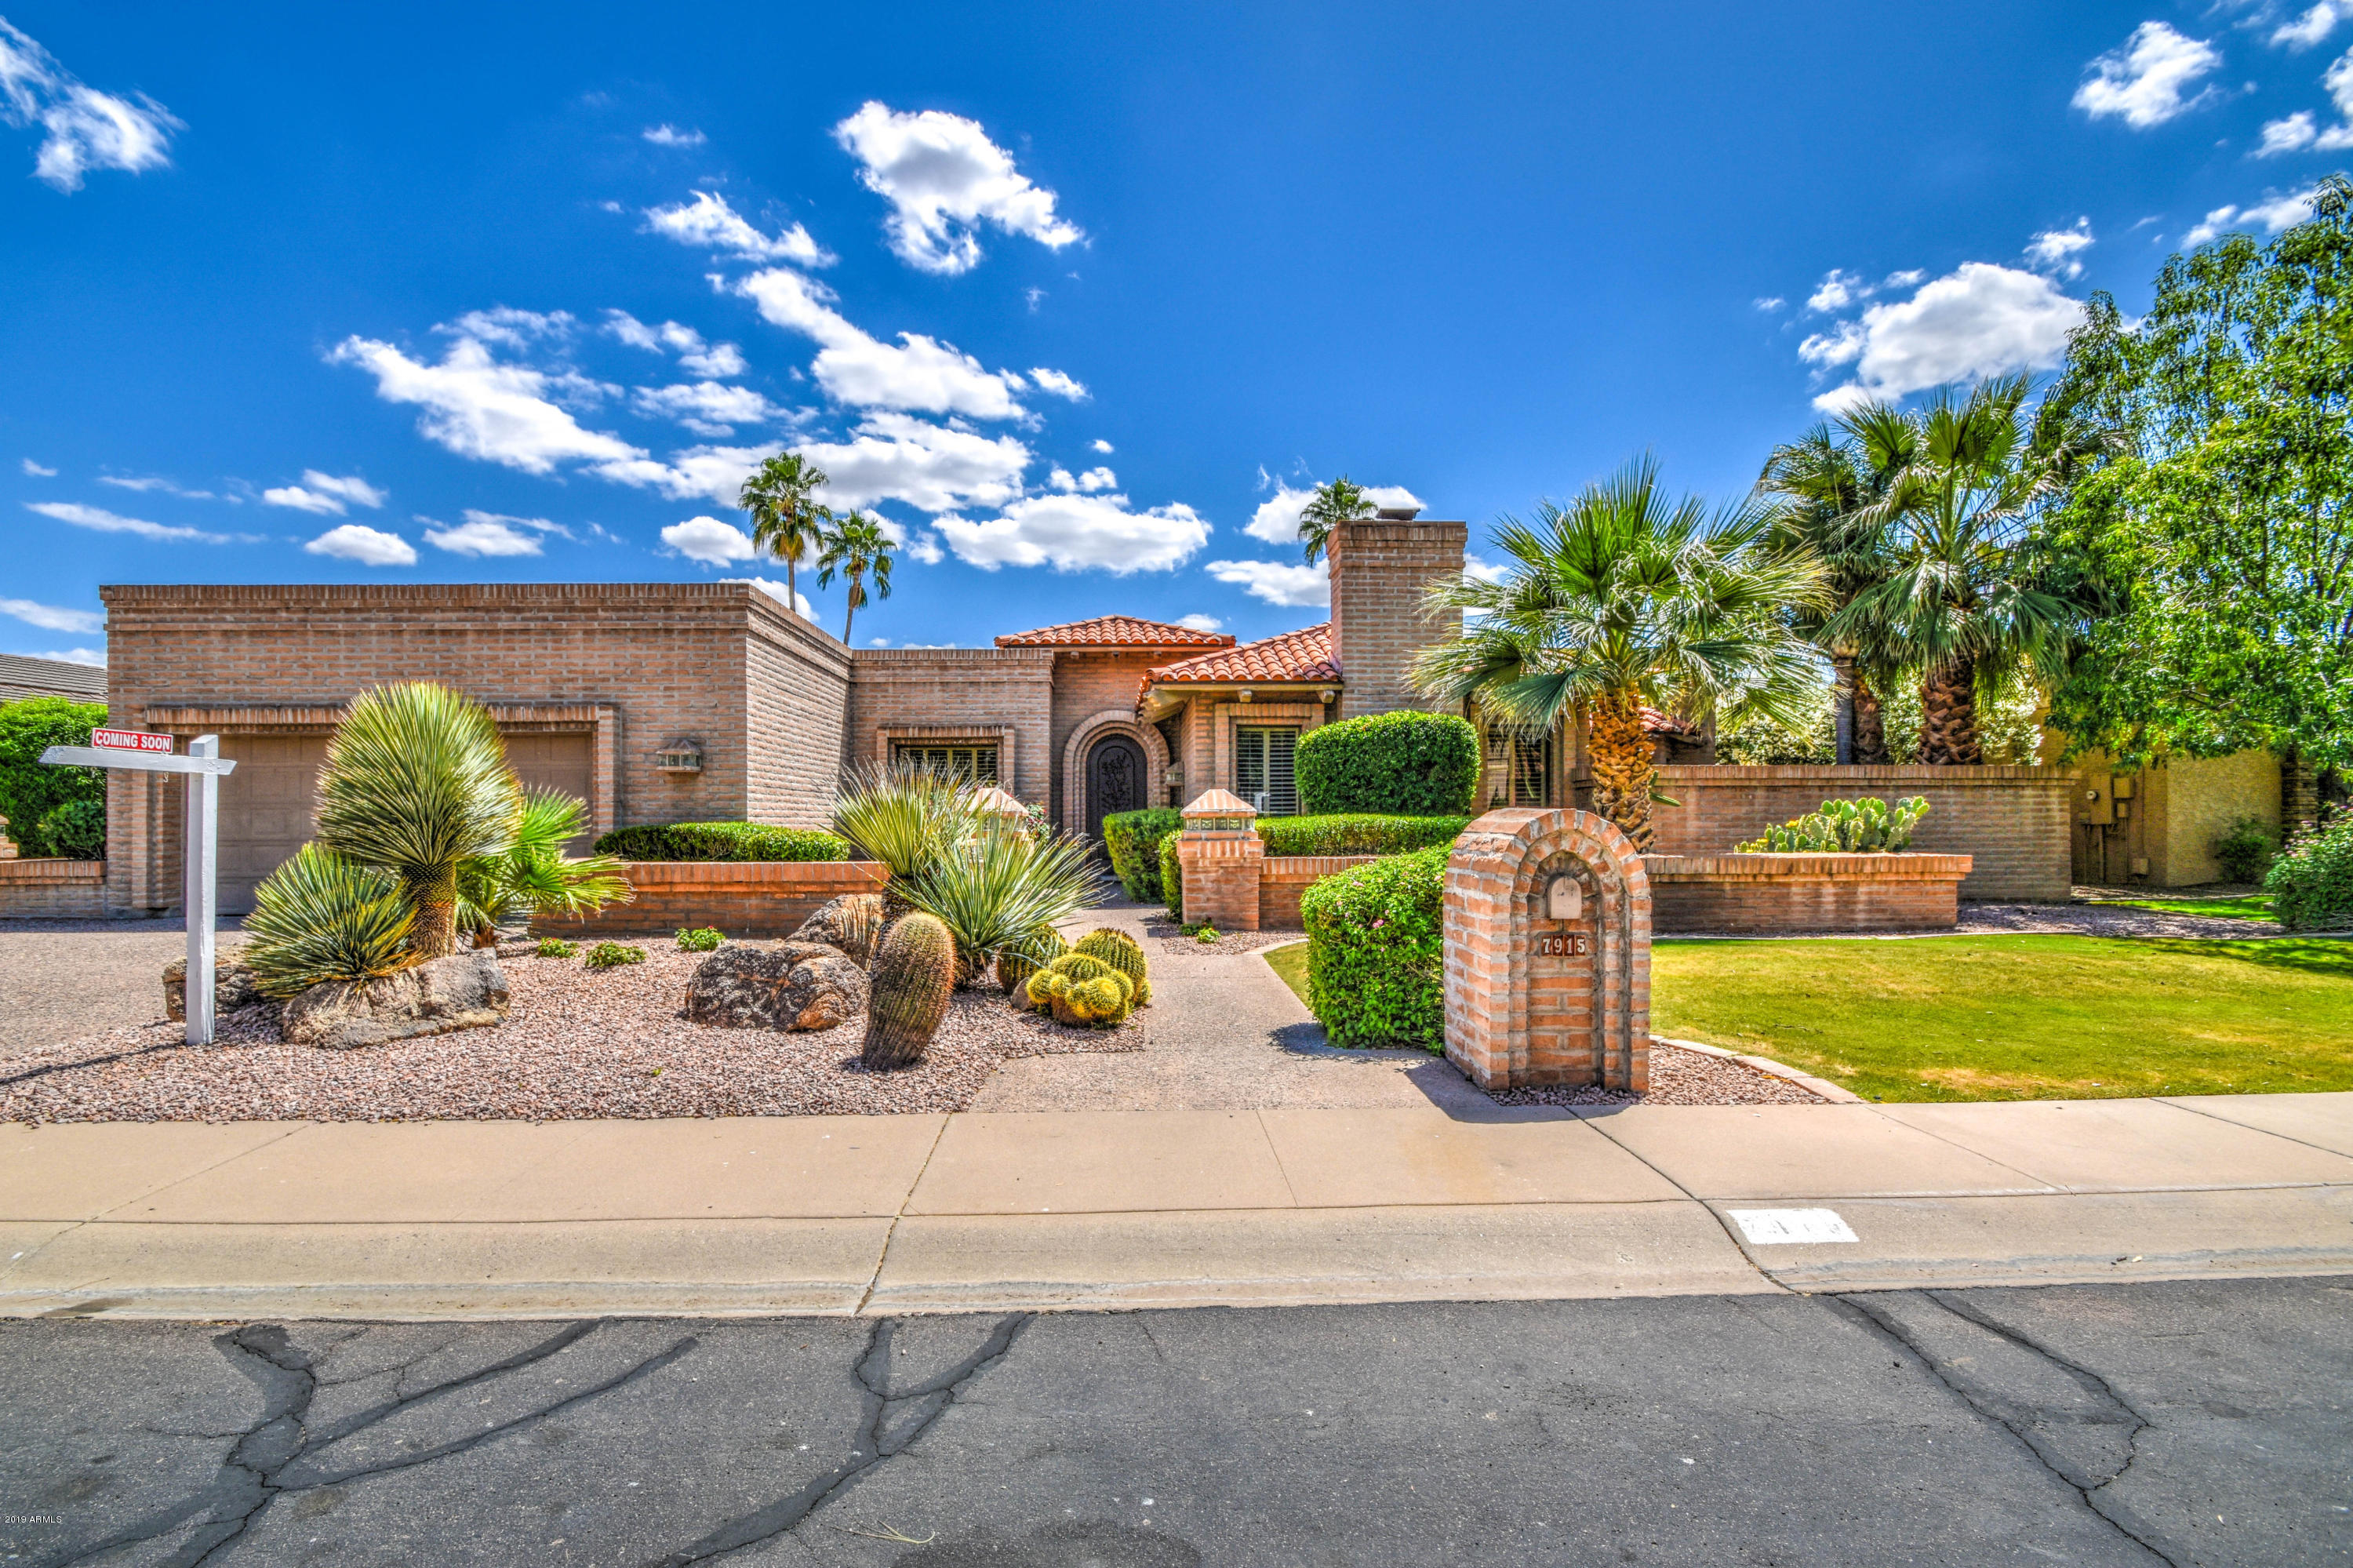 7915 E NORTH Lane, Scottsdale AZ 85258